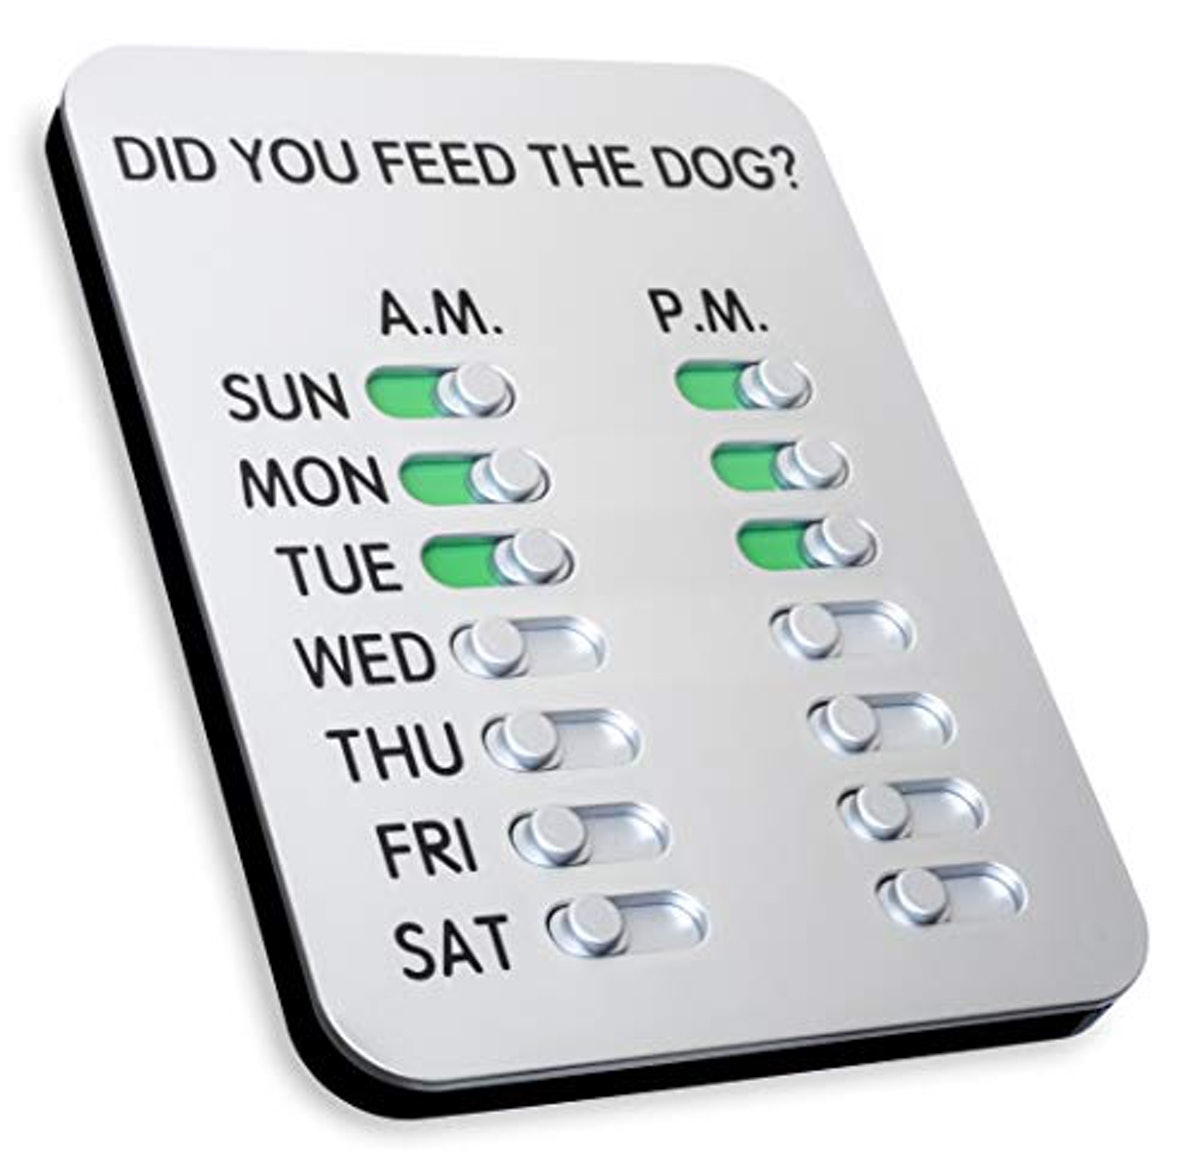 The ORIGINAL 'Did You Feed the Dog?